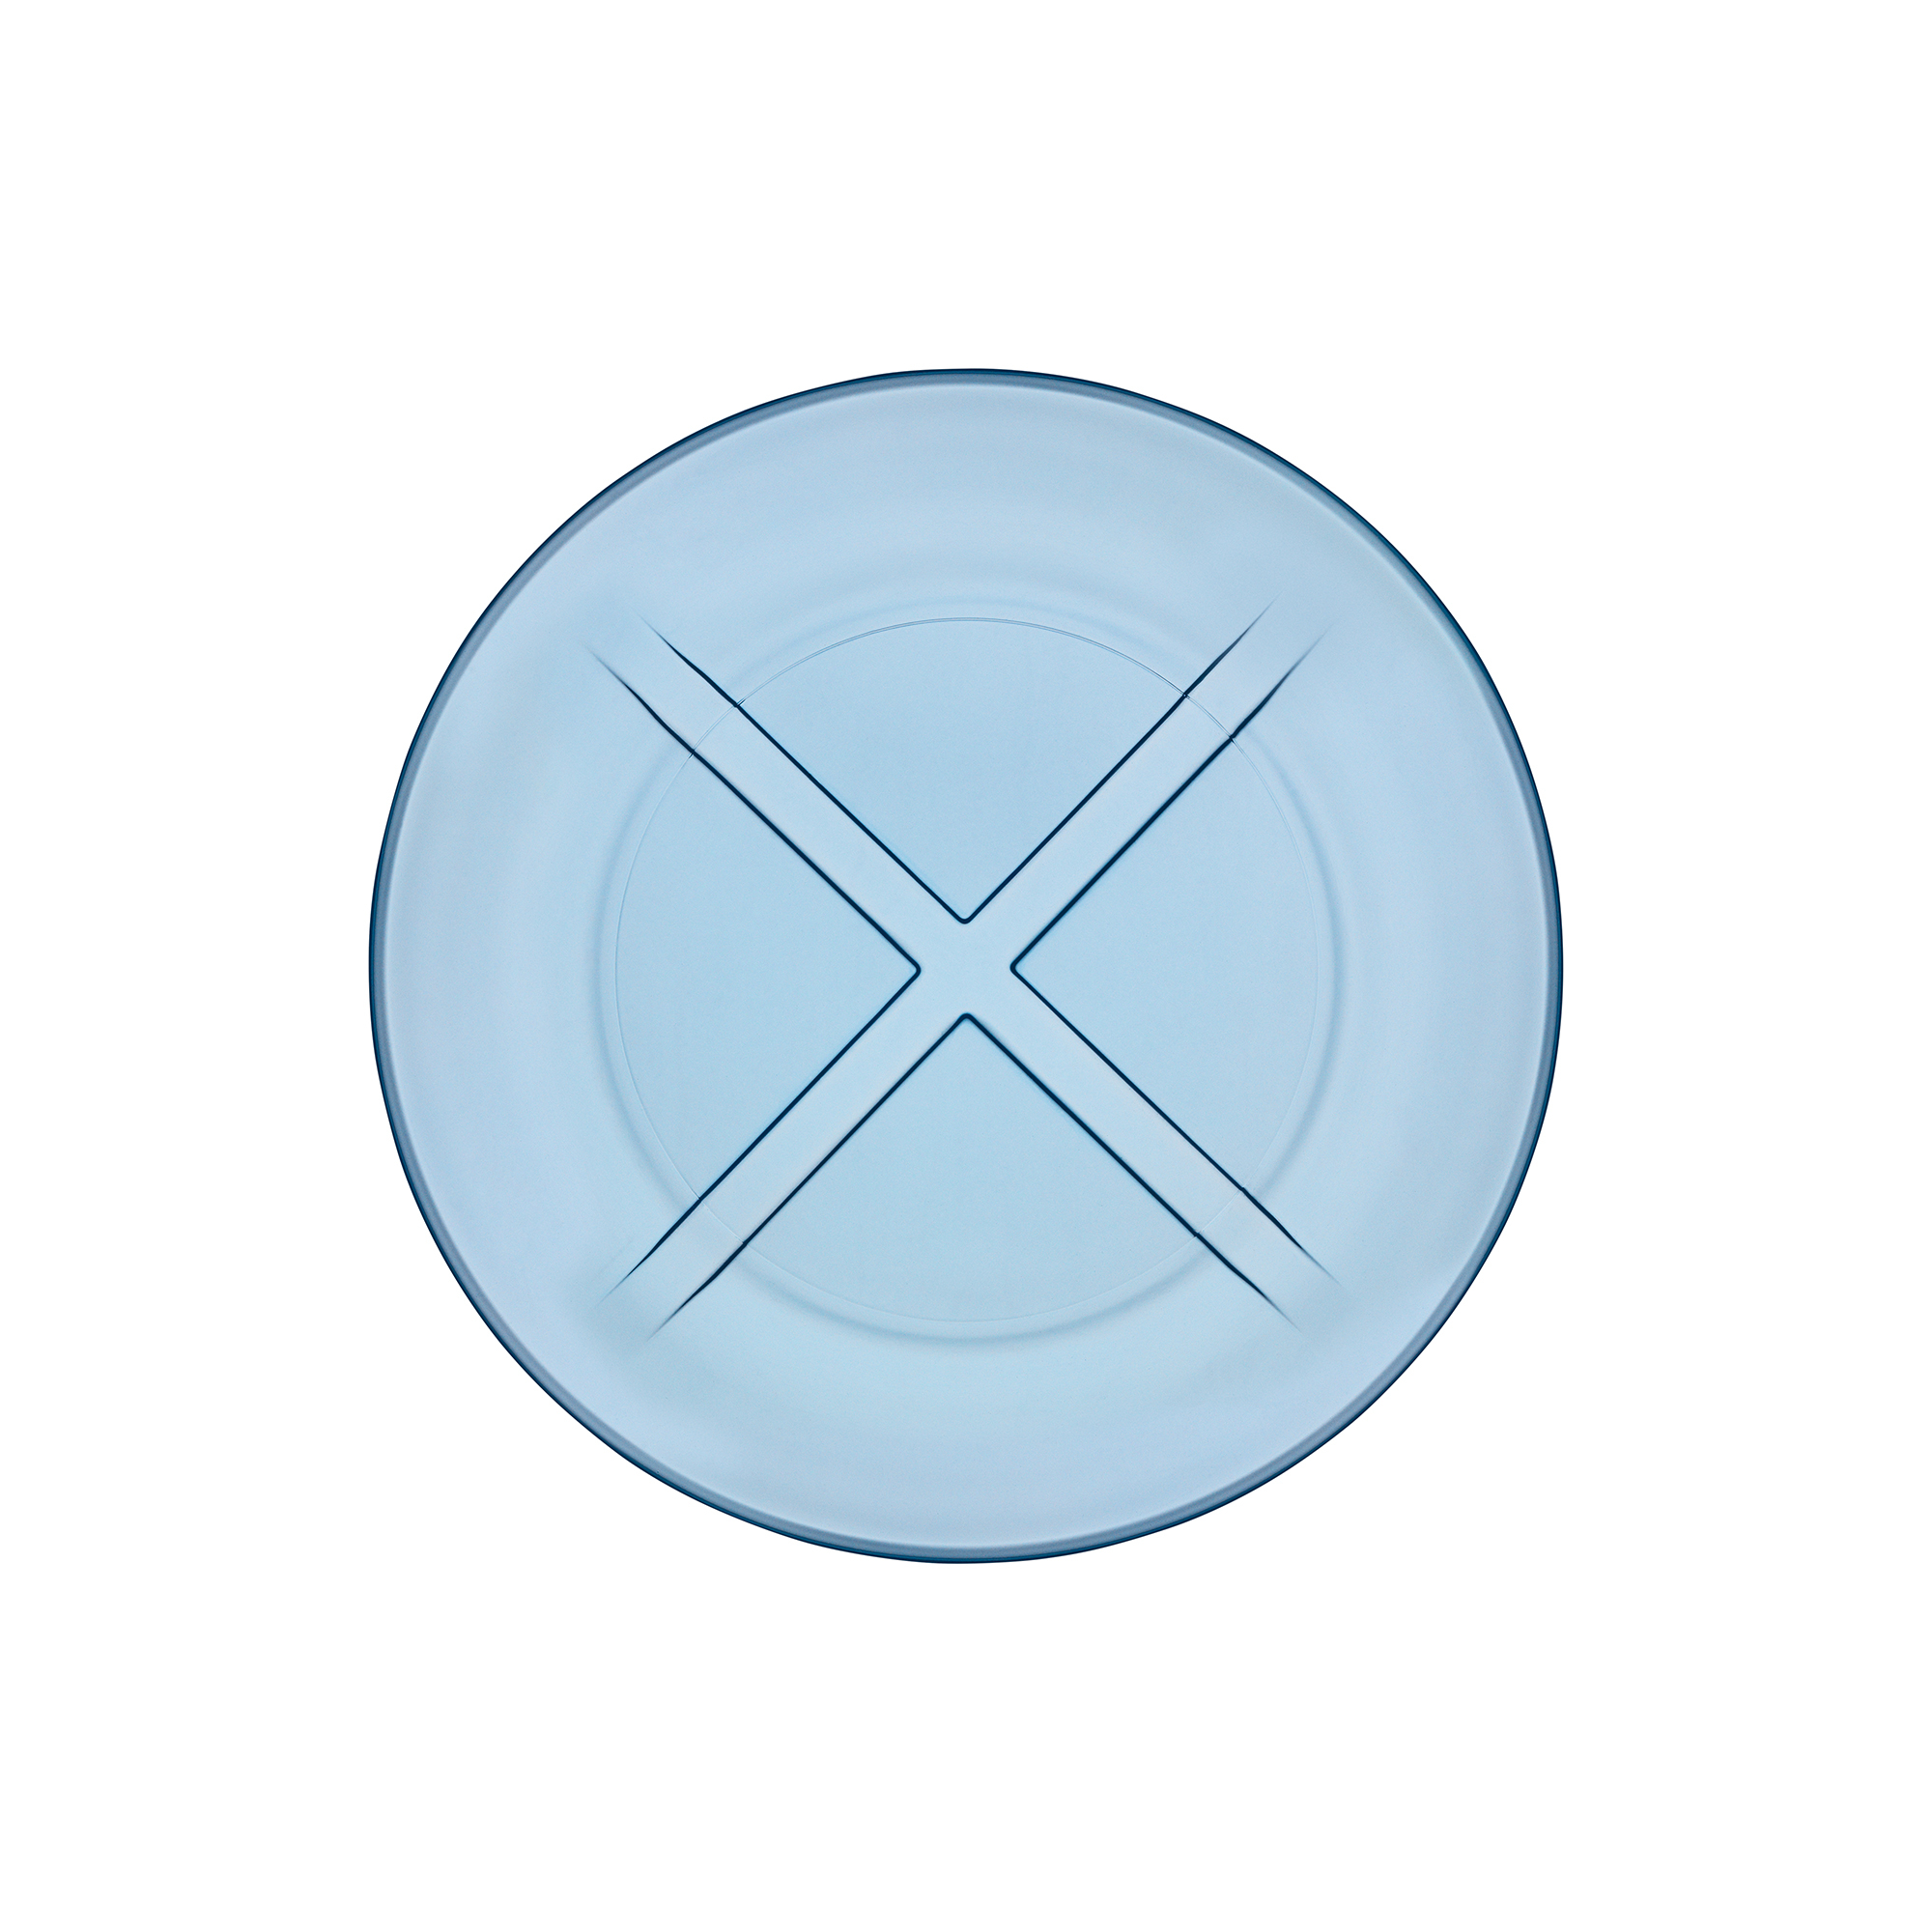 Kosta Boda Bruk Salad Plate, Waterblue